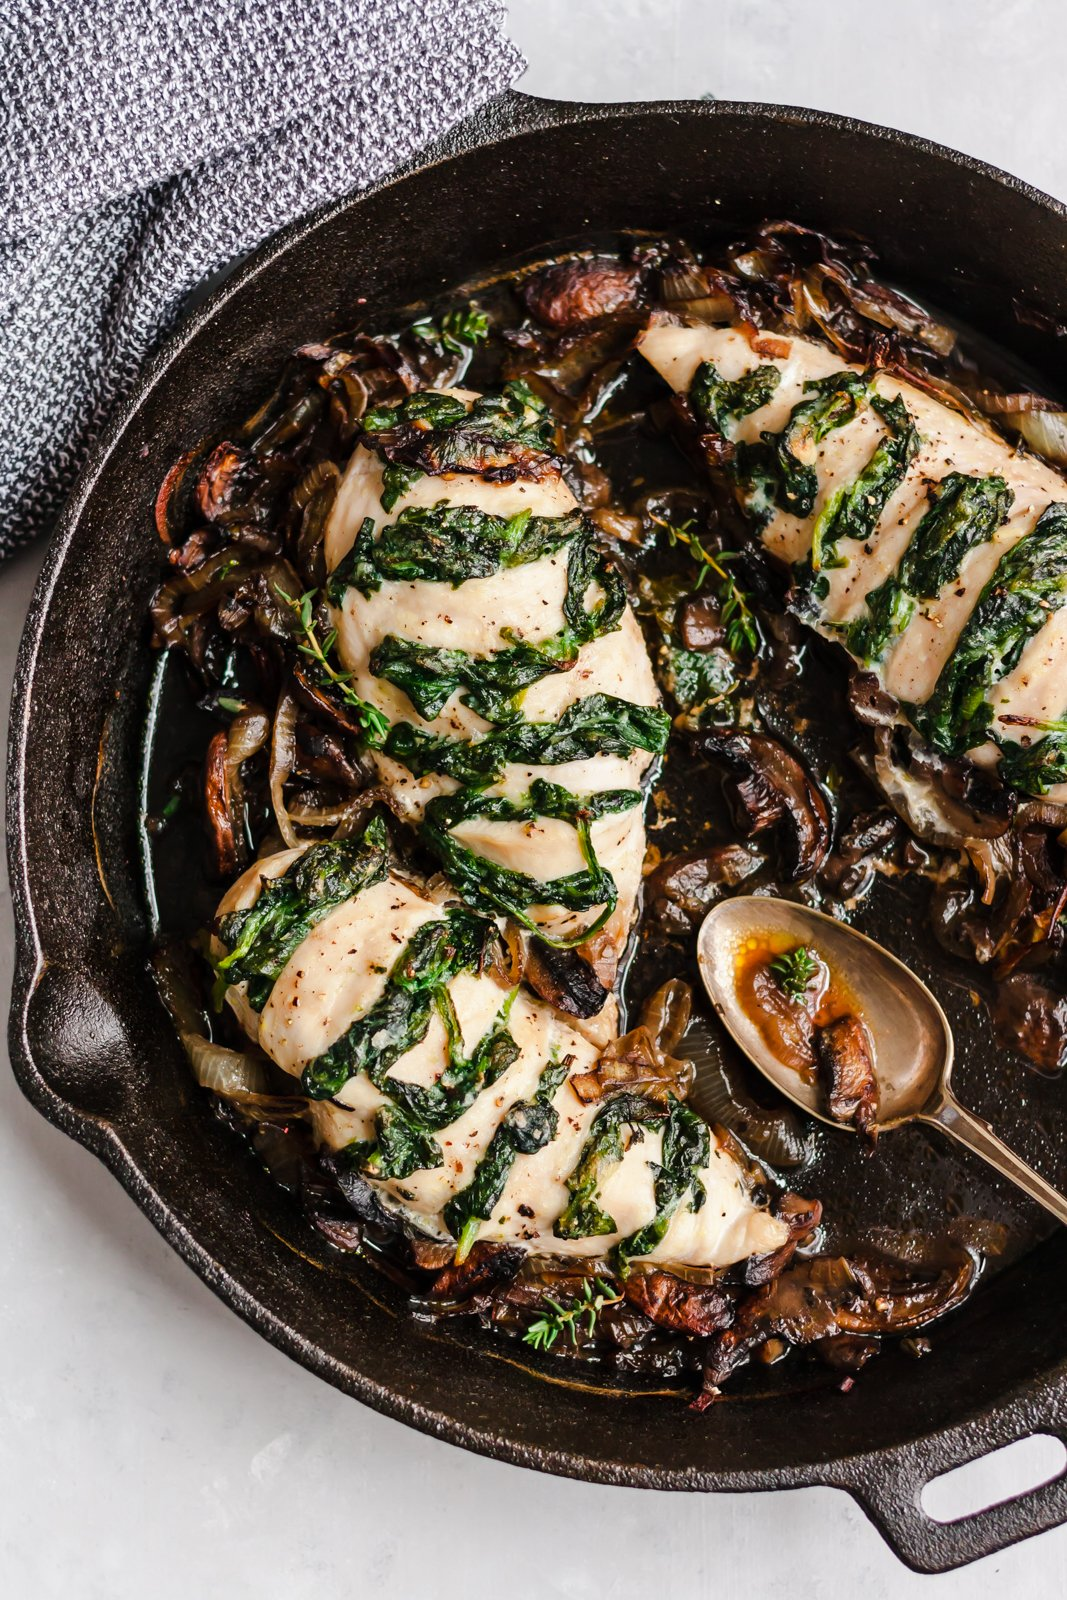 spinach stuffed chicken breasts with onions and mushrooms in a skillet with a spoon on the side